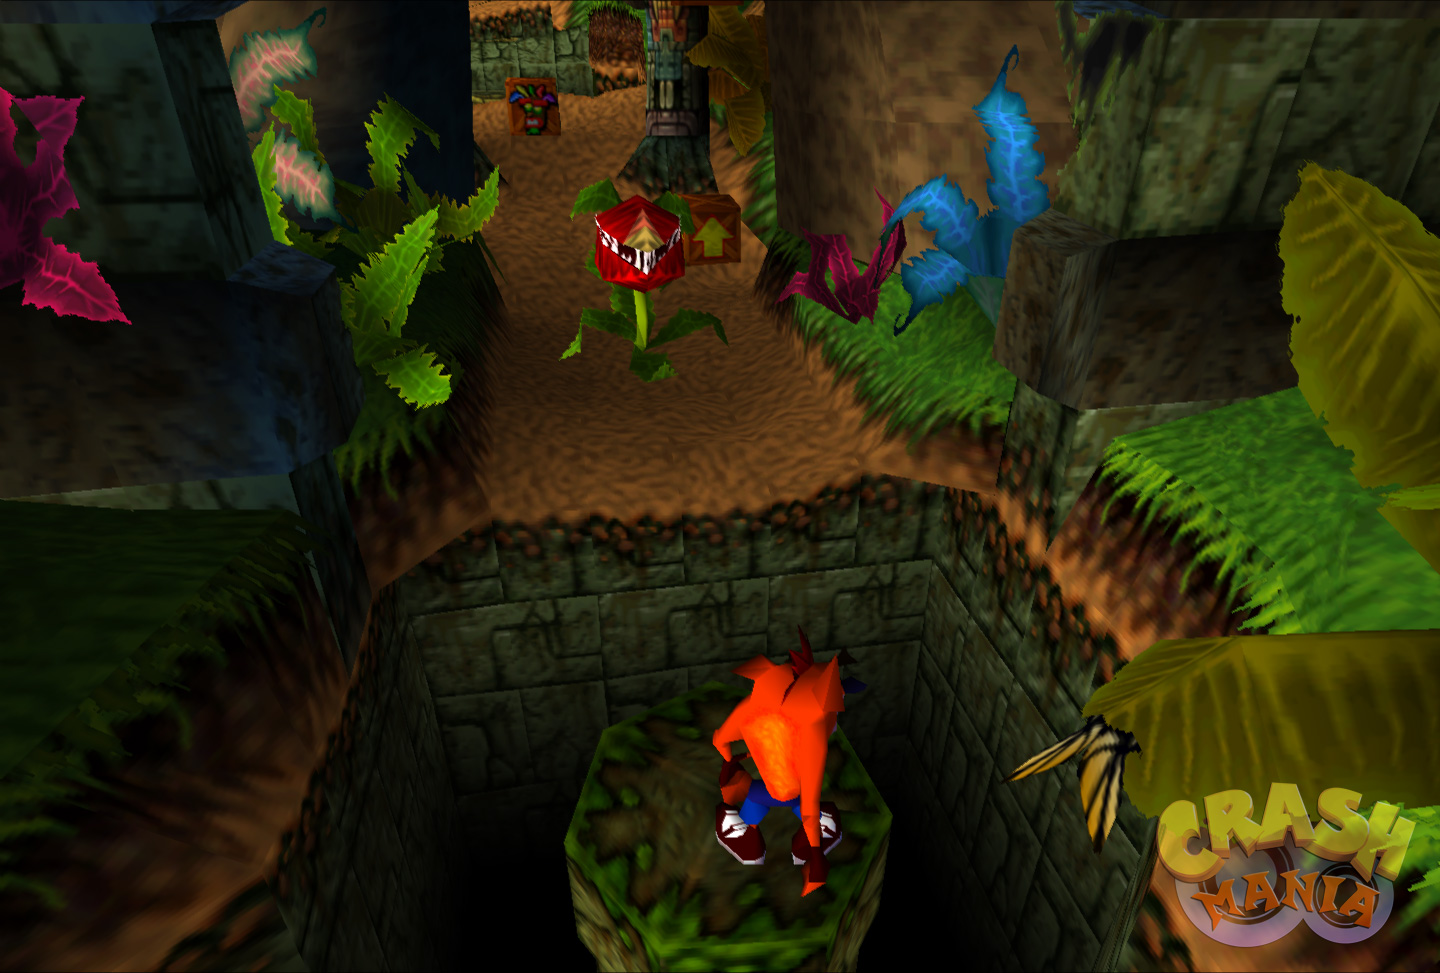 An orange bandicoot named Crash stands on top of a column in the middle of a jungle pit. A large, carnivorous plant sits in the distance.